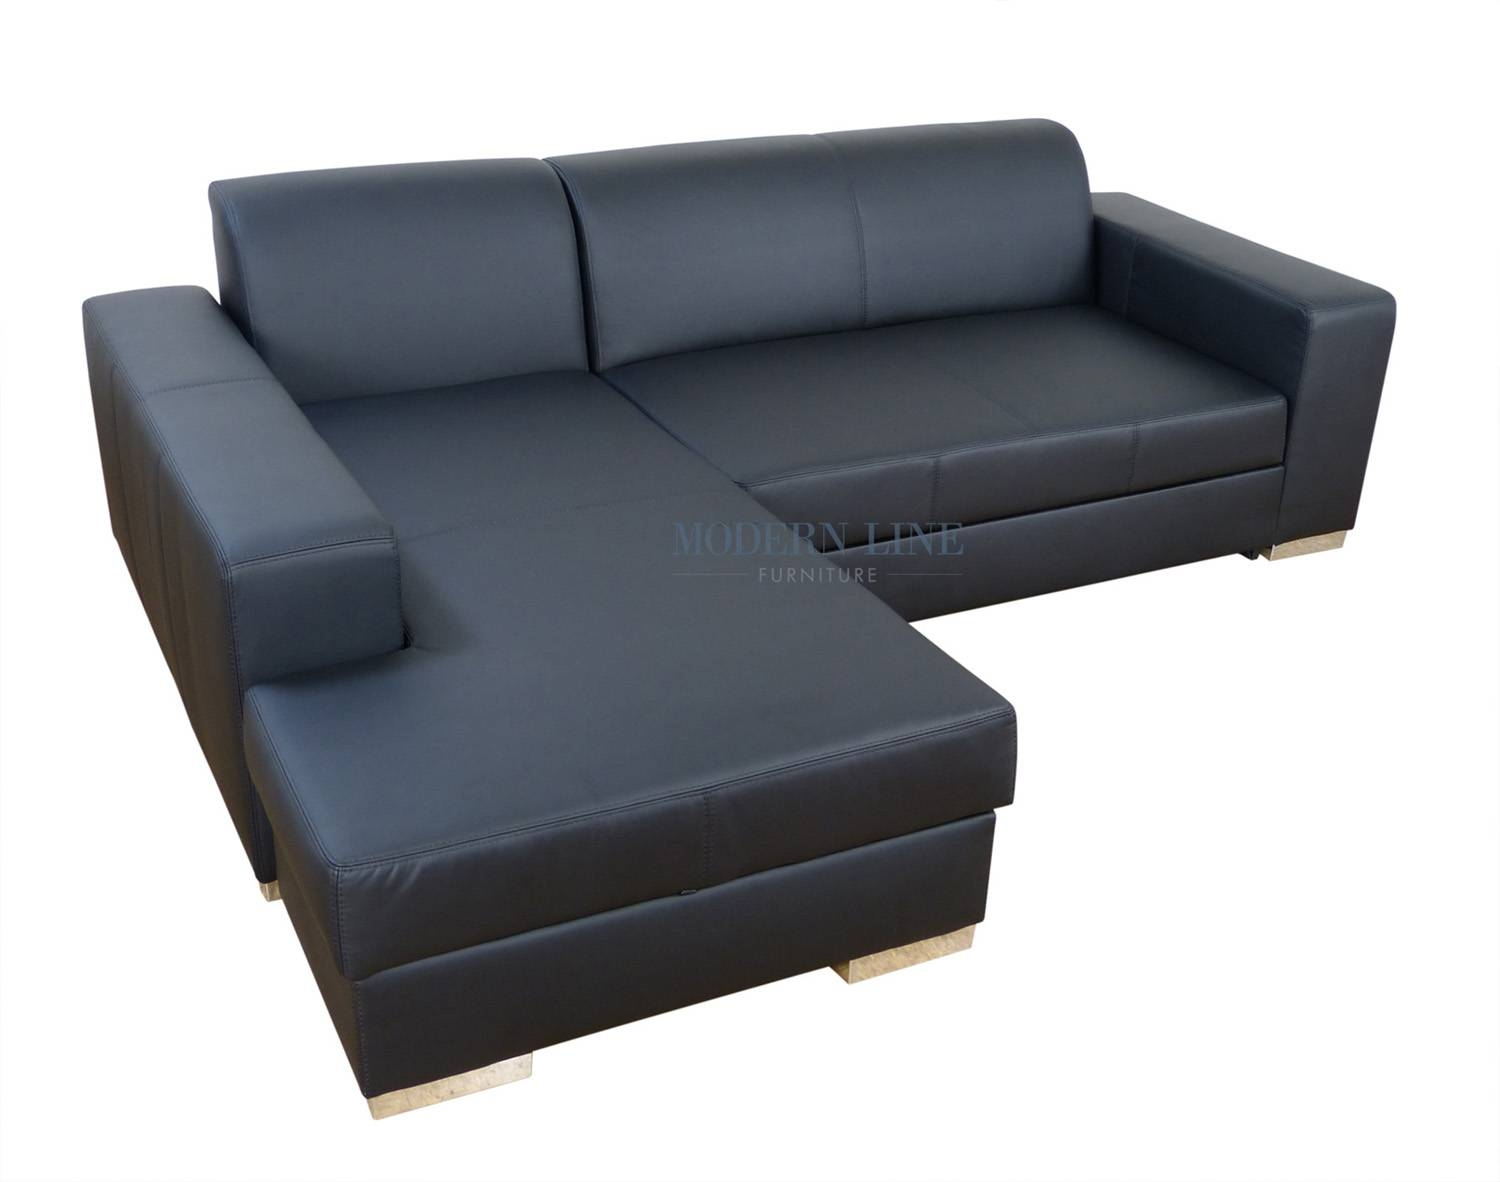 Modern Line Furniture - Commercial Furniture - Custom Made in Sectional Sofa With Storage (Image 14 of 25)